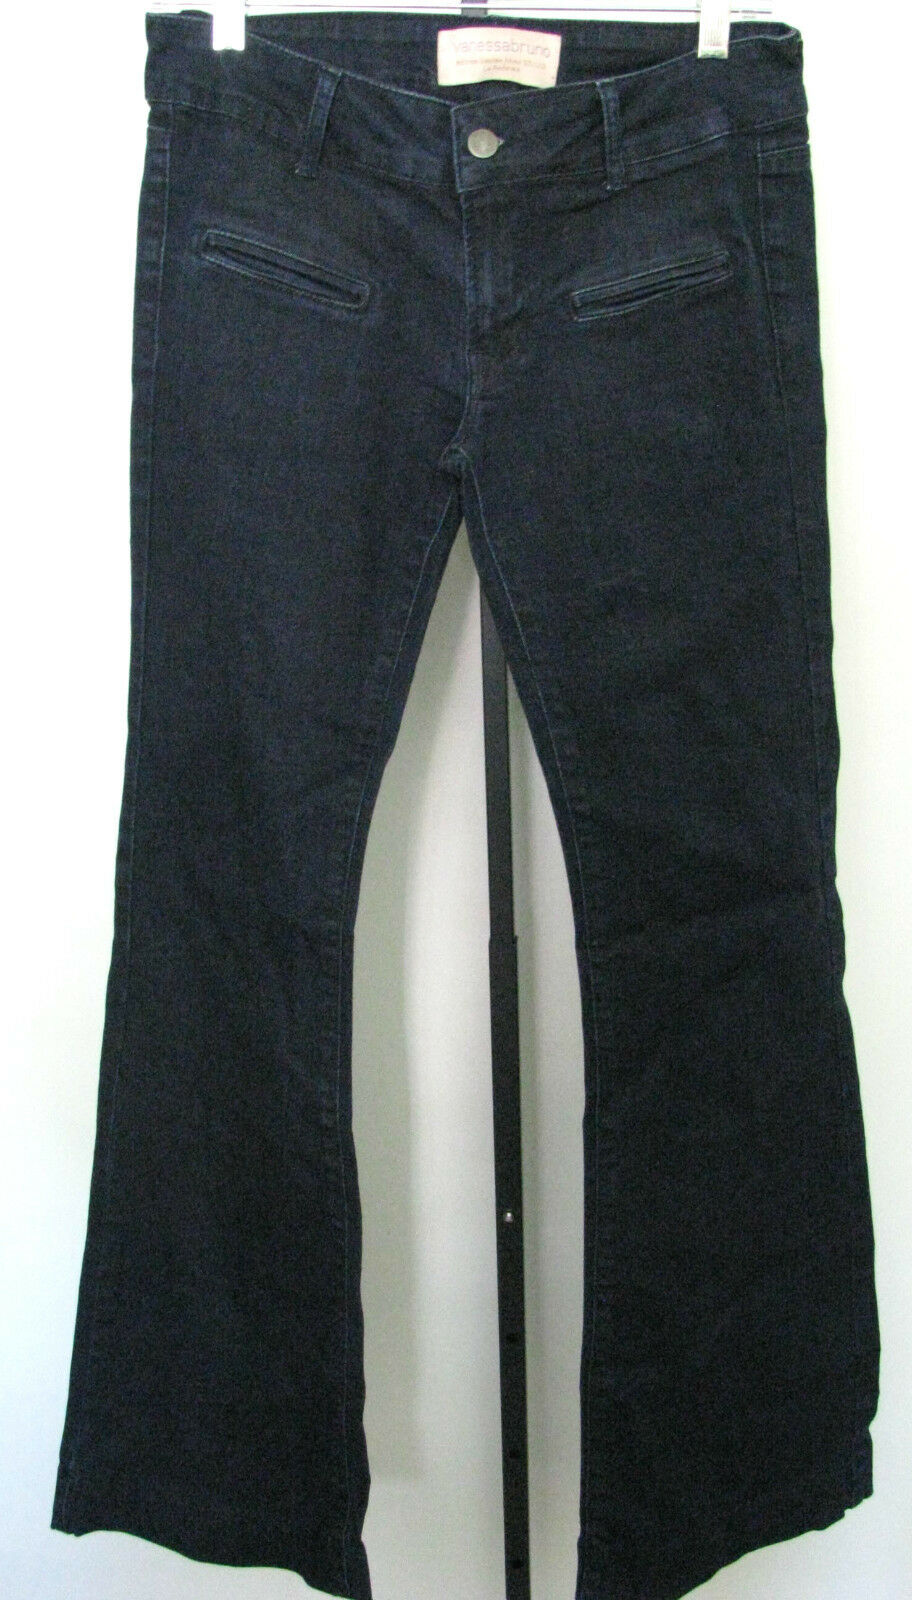 VANESSA BRUNO LIMITED EDITION 2011  12 La Redoute Boot Cut bluee Jeans Size US 4